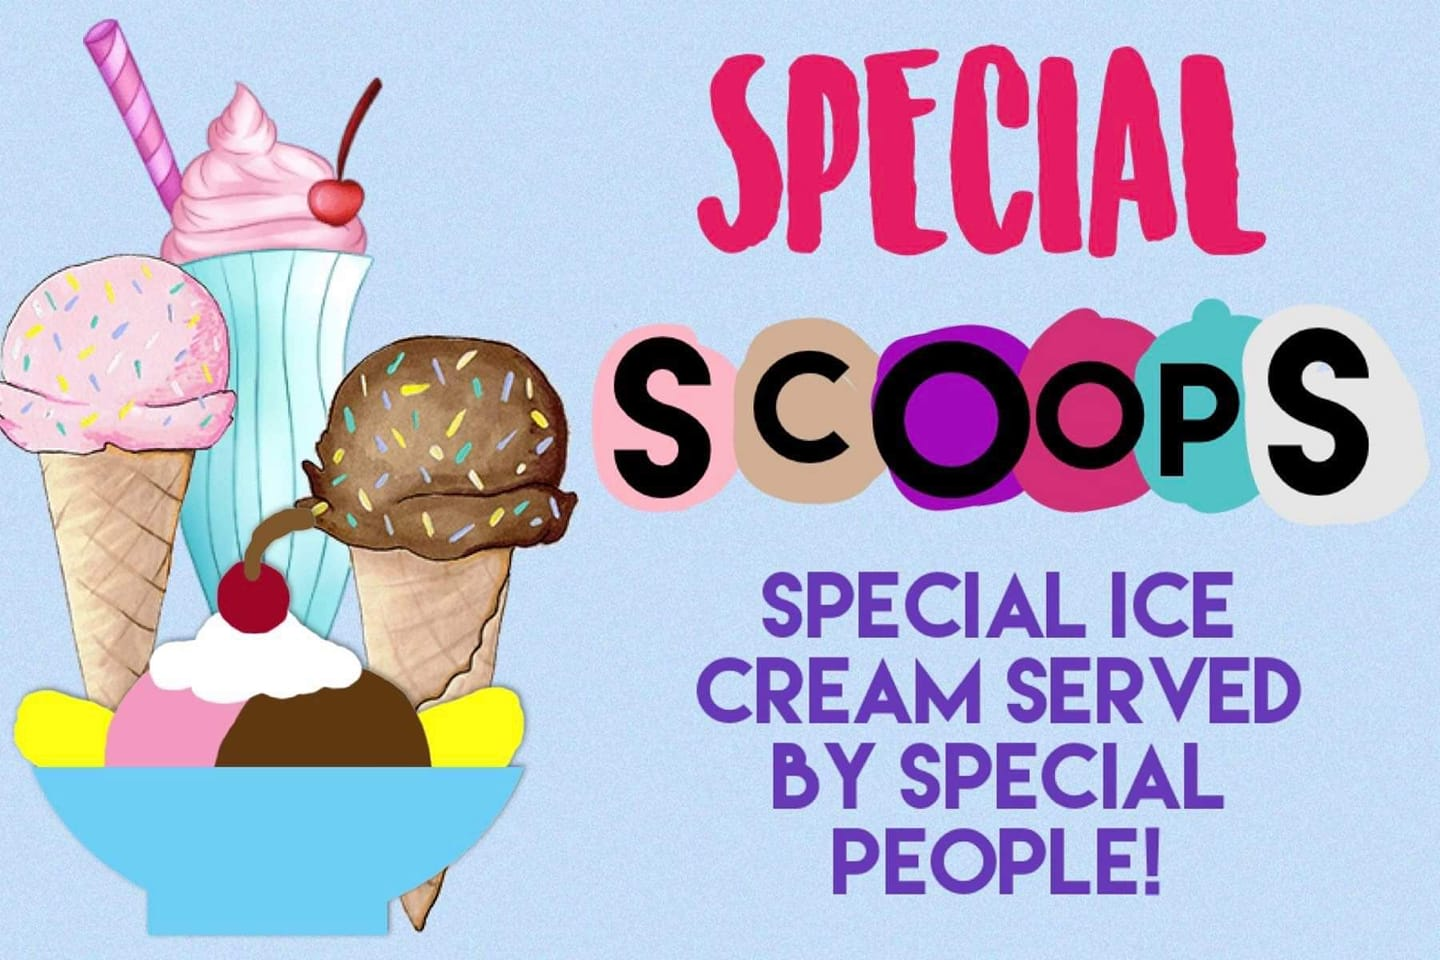 Special Scoops Ice Cream Parlor